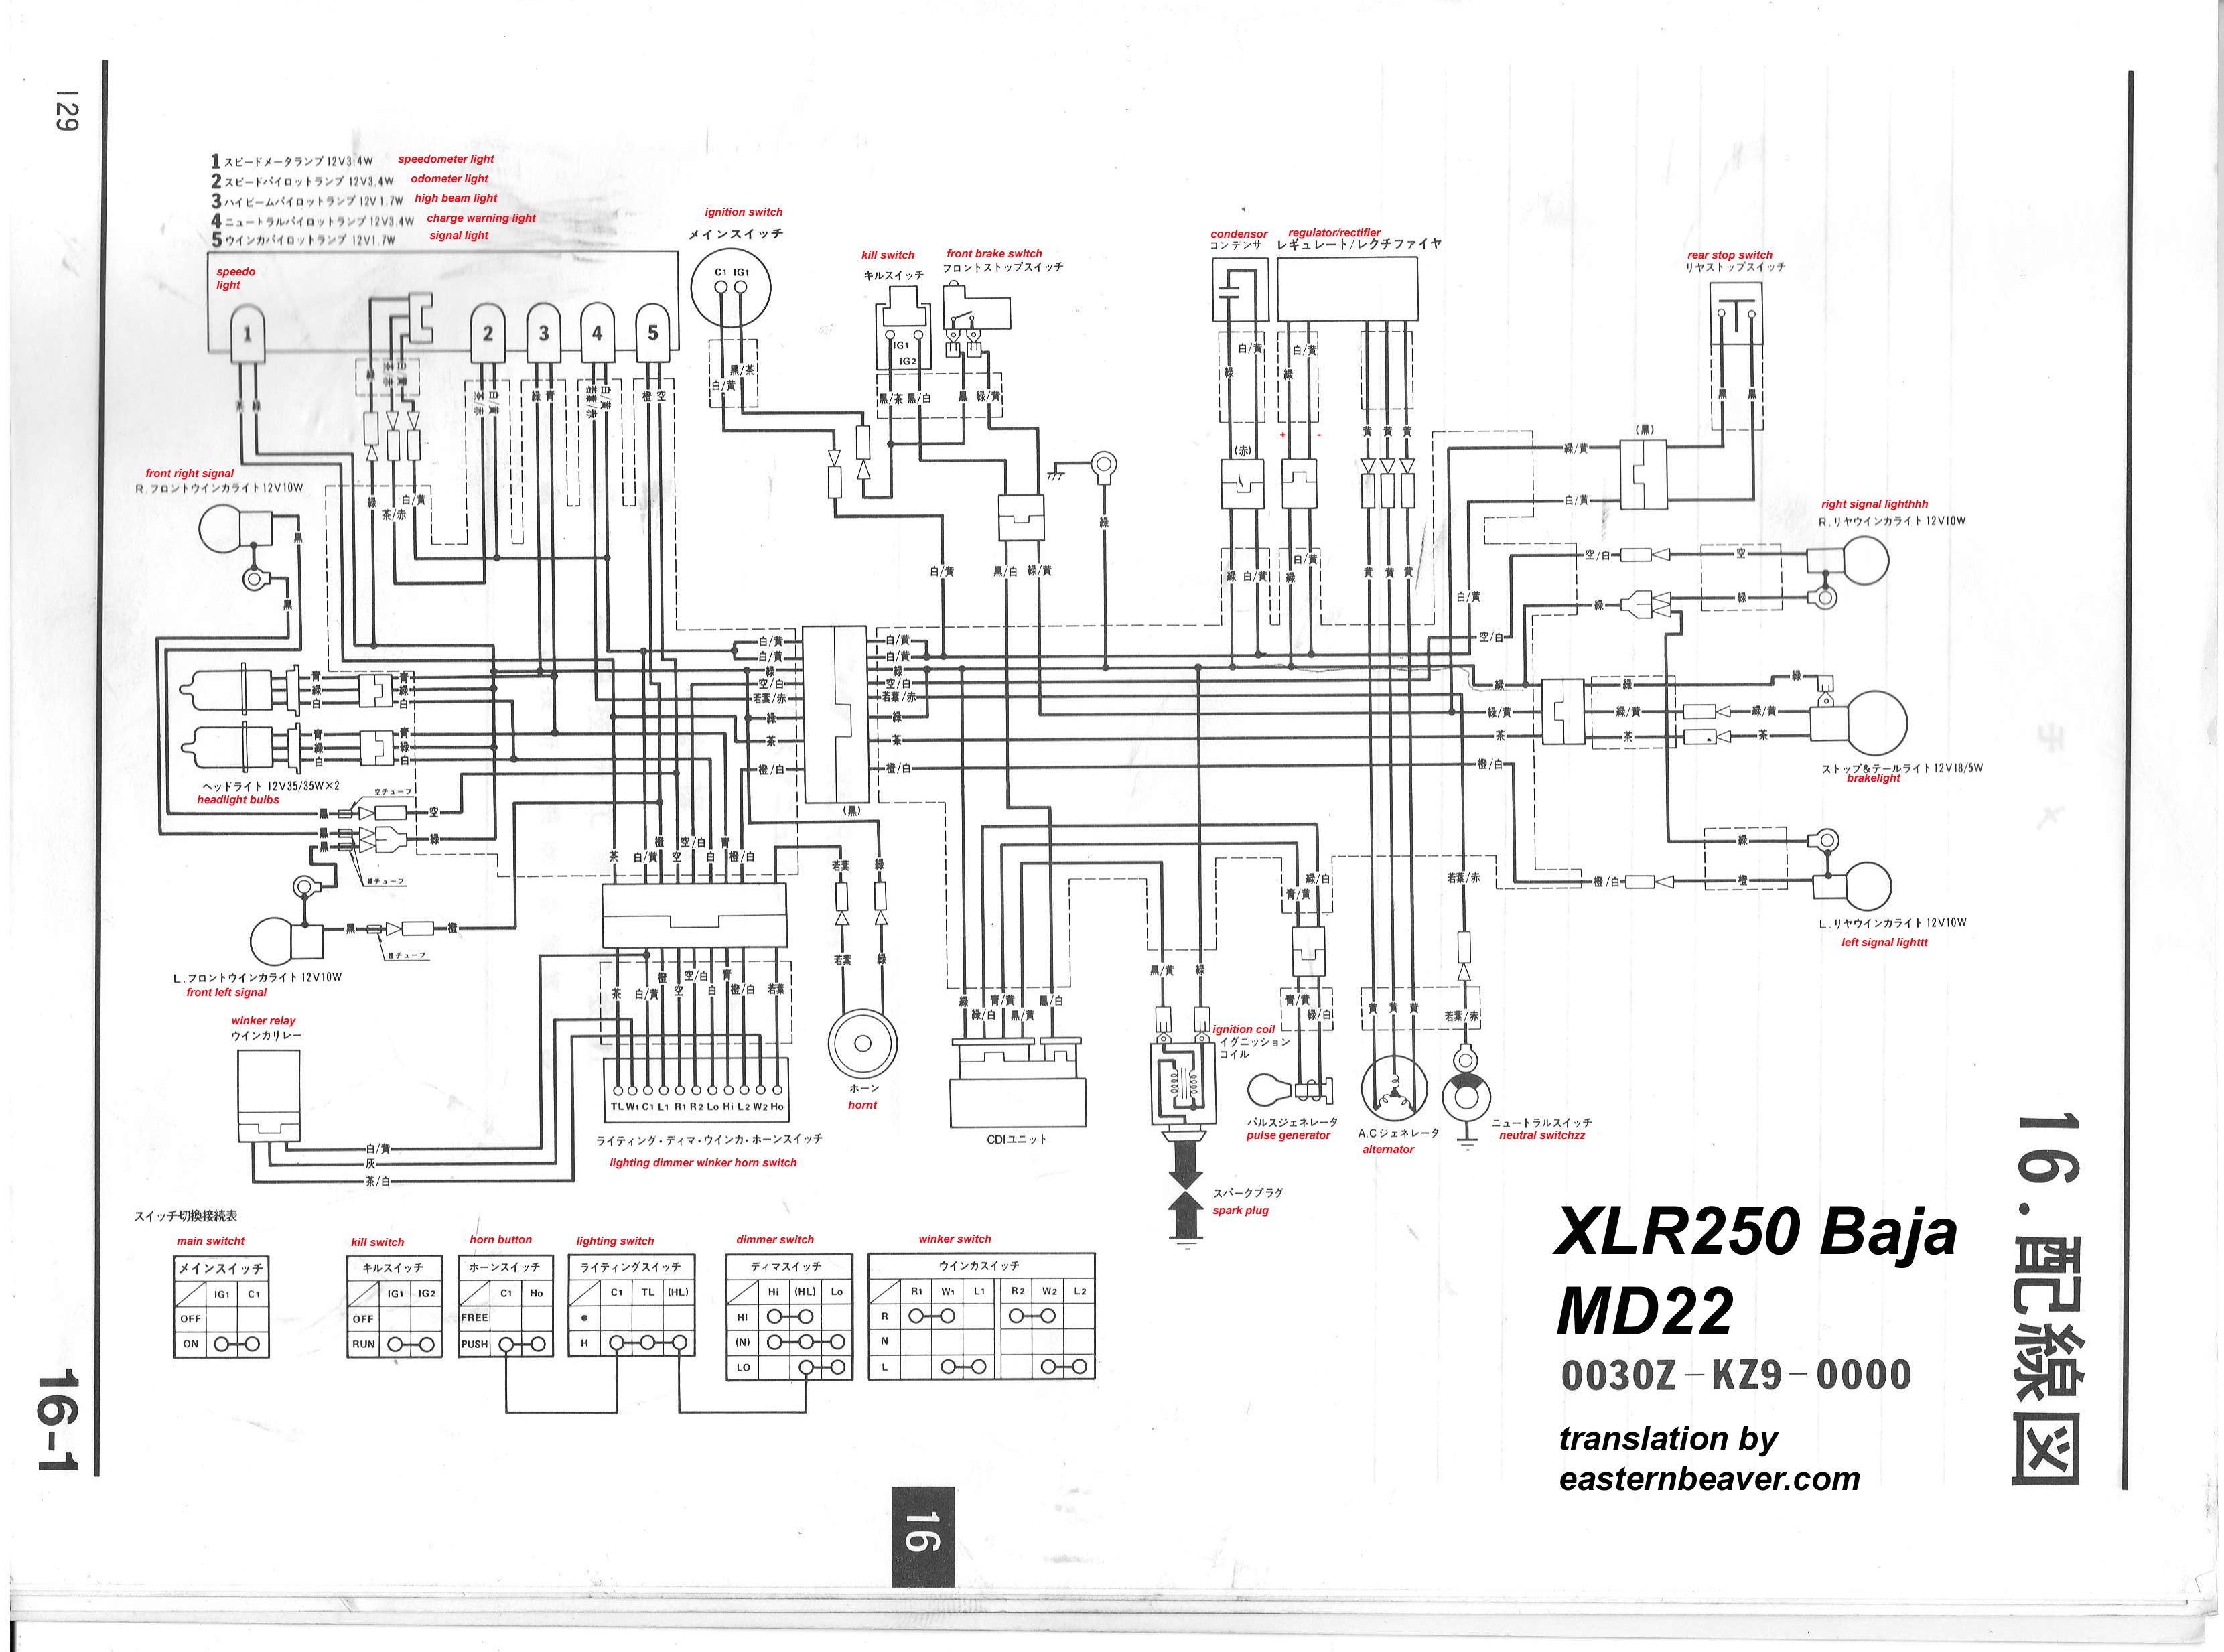 Honda Xr 250 Wiring Diagram Circuit -87 Dodge D150 Wiring Diagram Schematic  | Begeboy Wiring Diagram SourceBegeboy Wiring Diagram Source